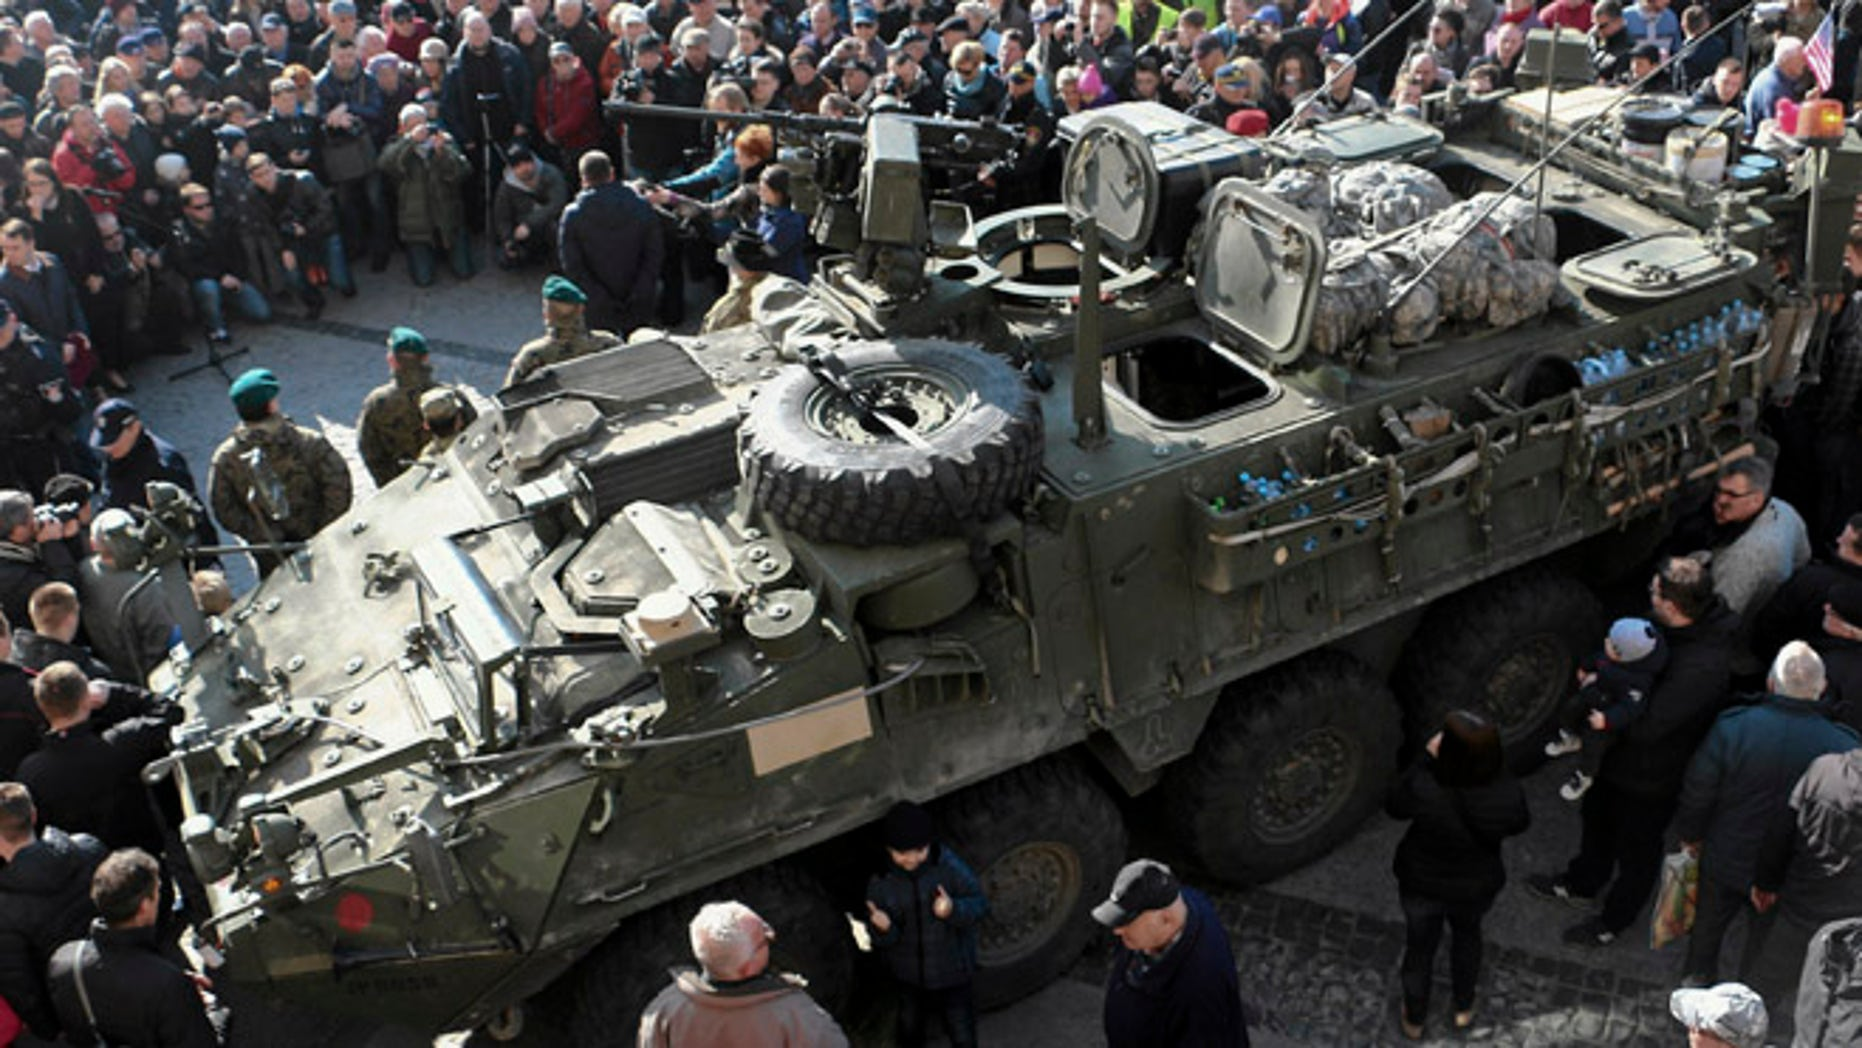 """March 24, 2015: People gather around an U.S. Army 2nd Cavalry Regiment """"Stryker"""" armored fighting vehicle in Bialystok, Poland, which is a part of the U.S. military """"Dragoon Ride"""" operation. Dragoon Ride is aimed at demonstrating commitment to NATO allies in light of Russia's aggression in Ukraine, according to the U.S. Army."""